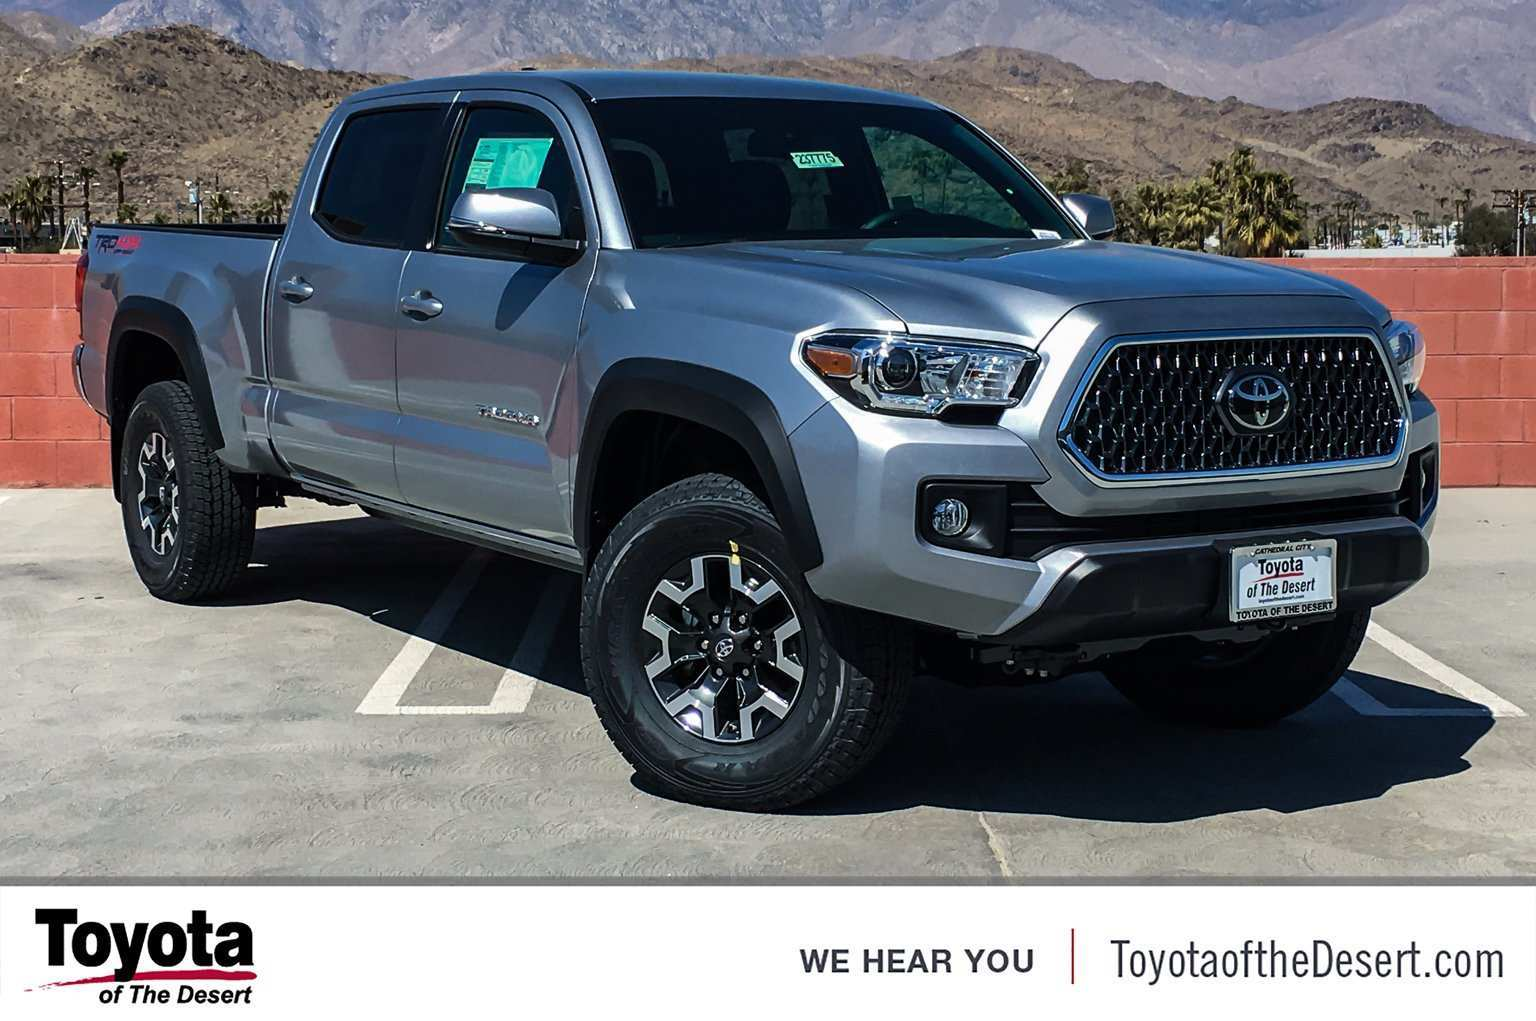 83 The Best 2019 Toyota Tacoma Picture